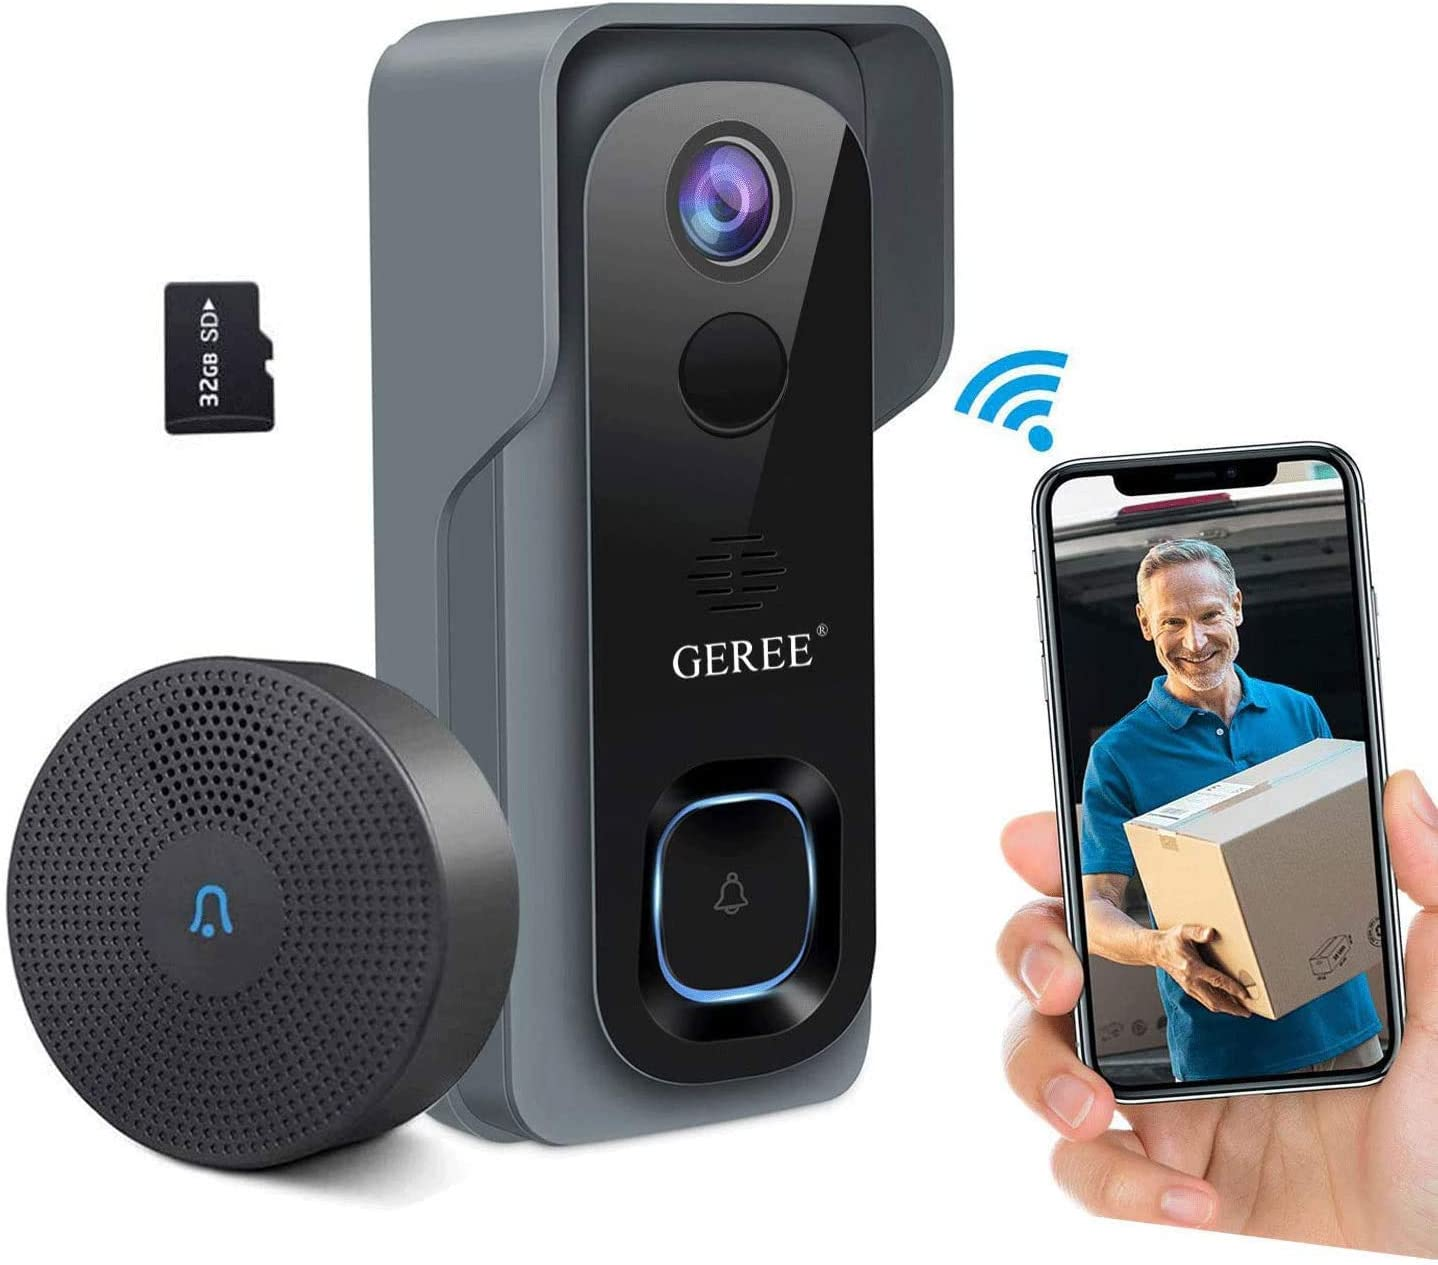 GEREE Video Doorbell Camera Wireless - Best Adjustable